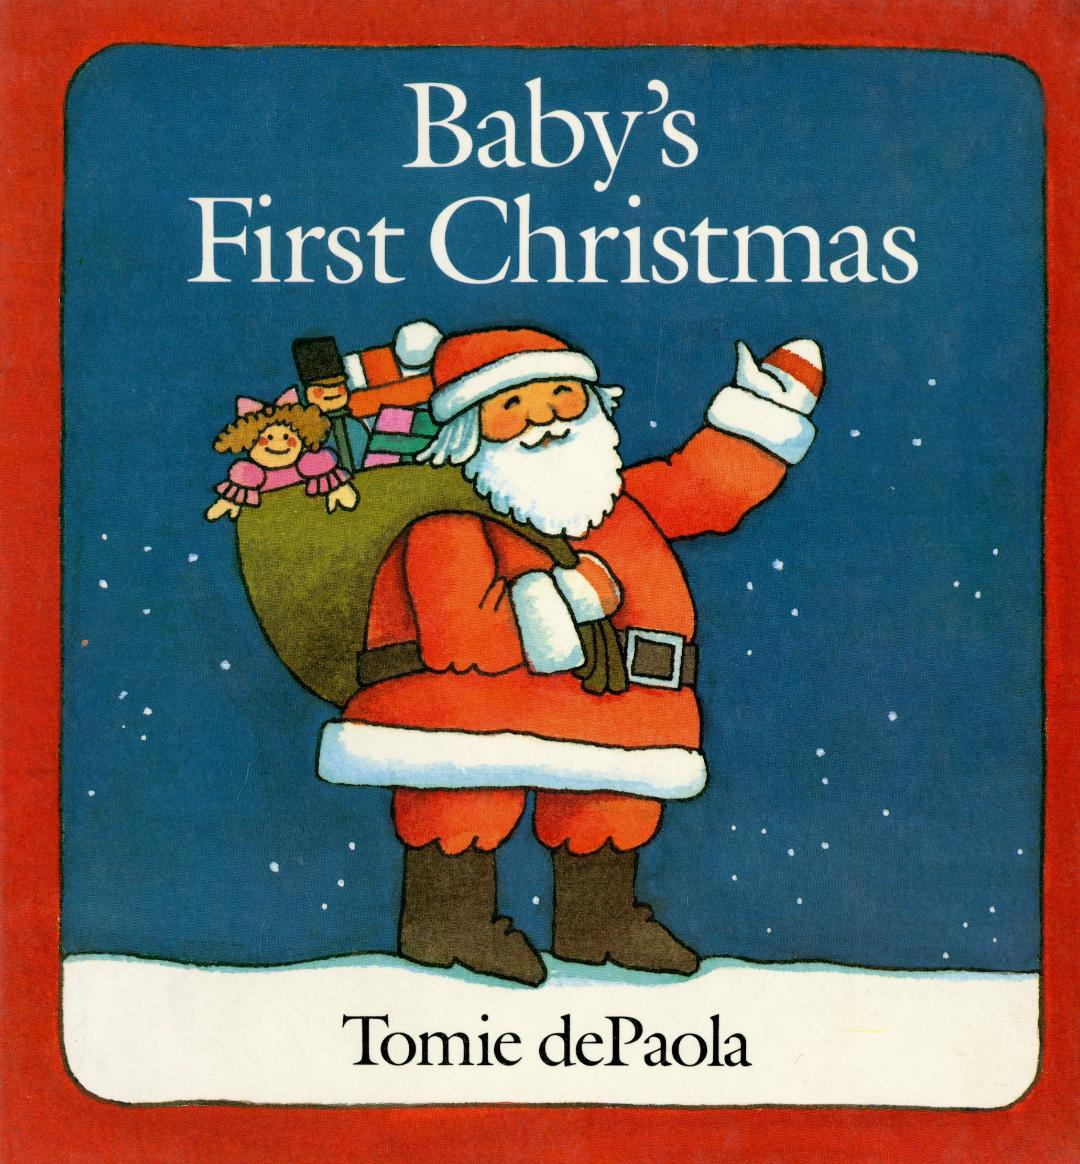 Baby's First Christmas.jpg